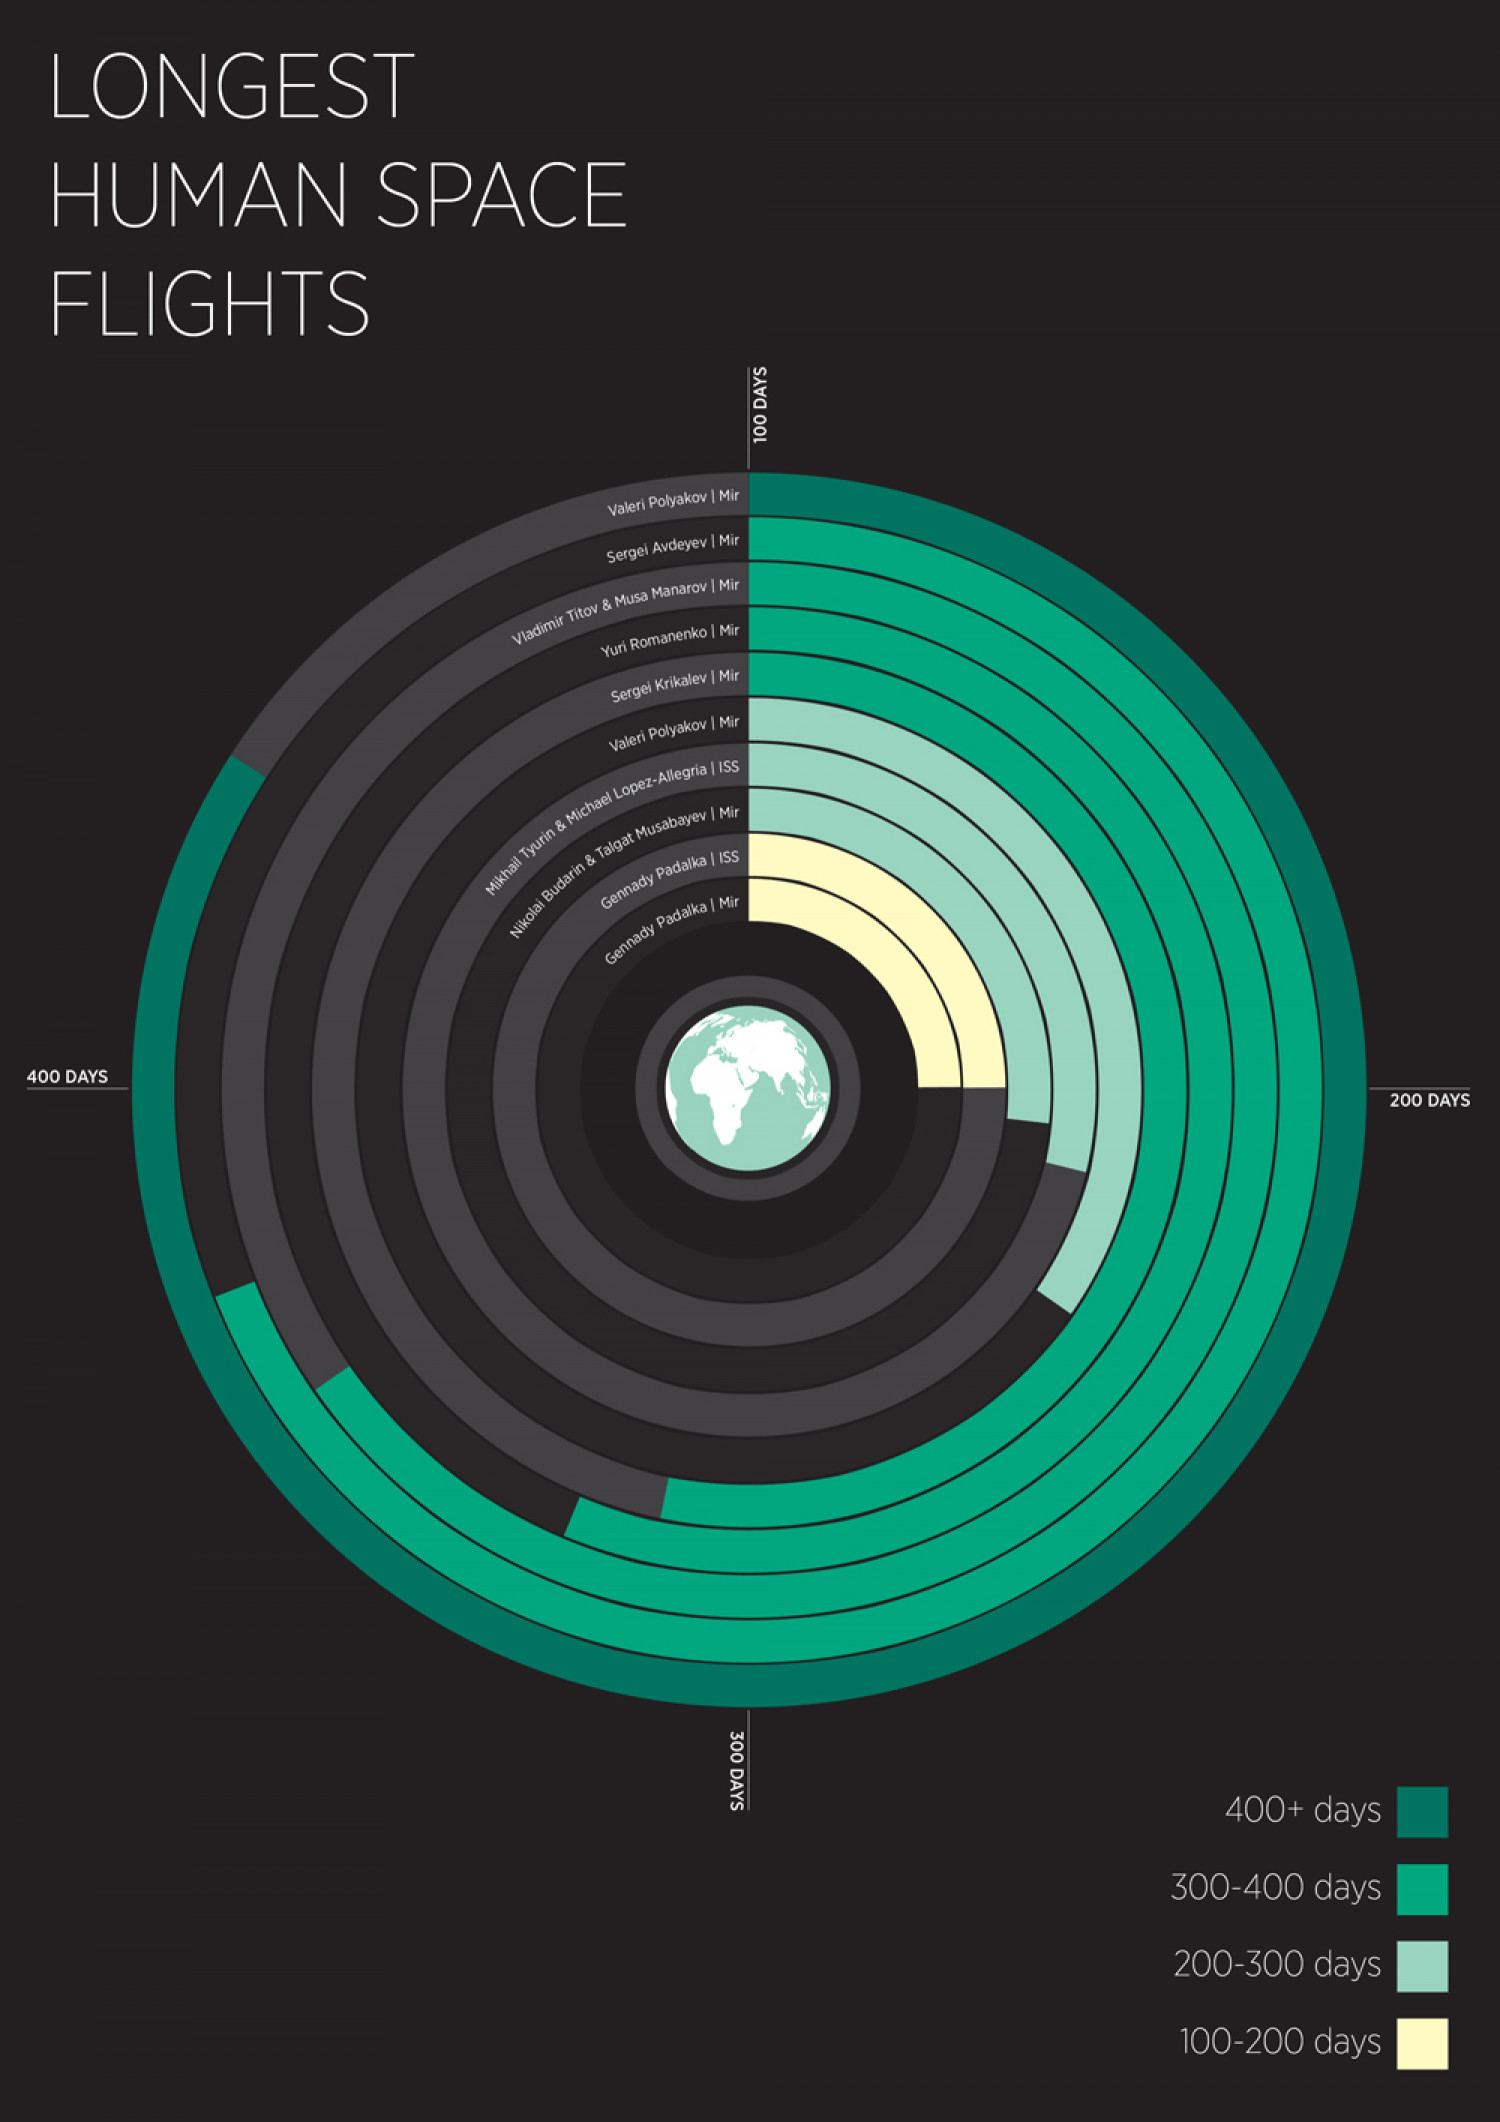 Longest Human Space Flights Infographic